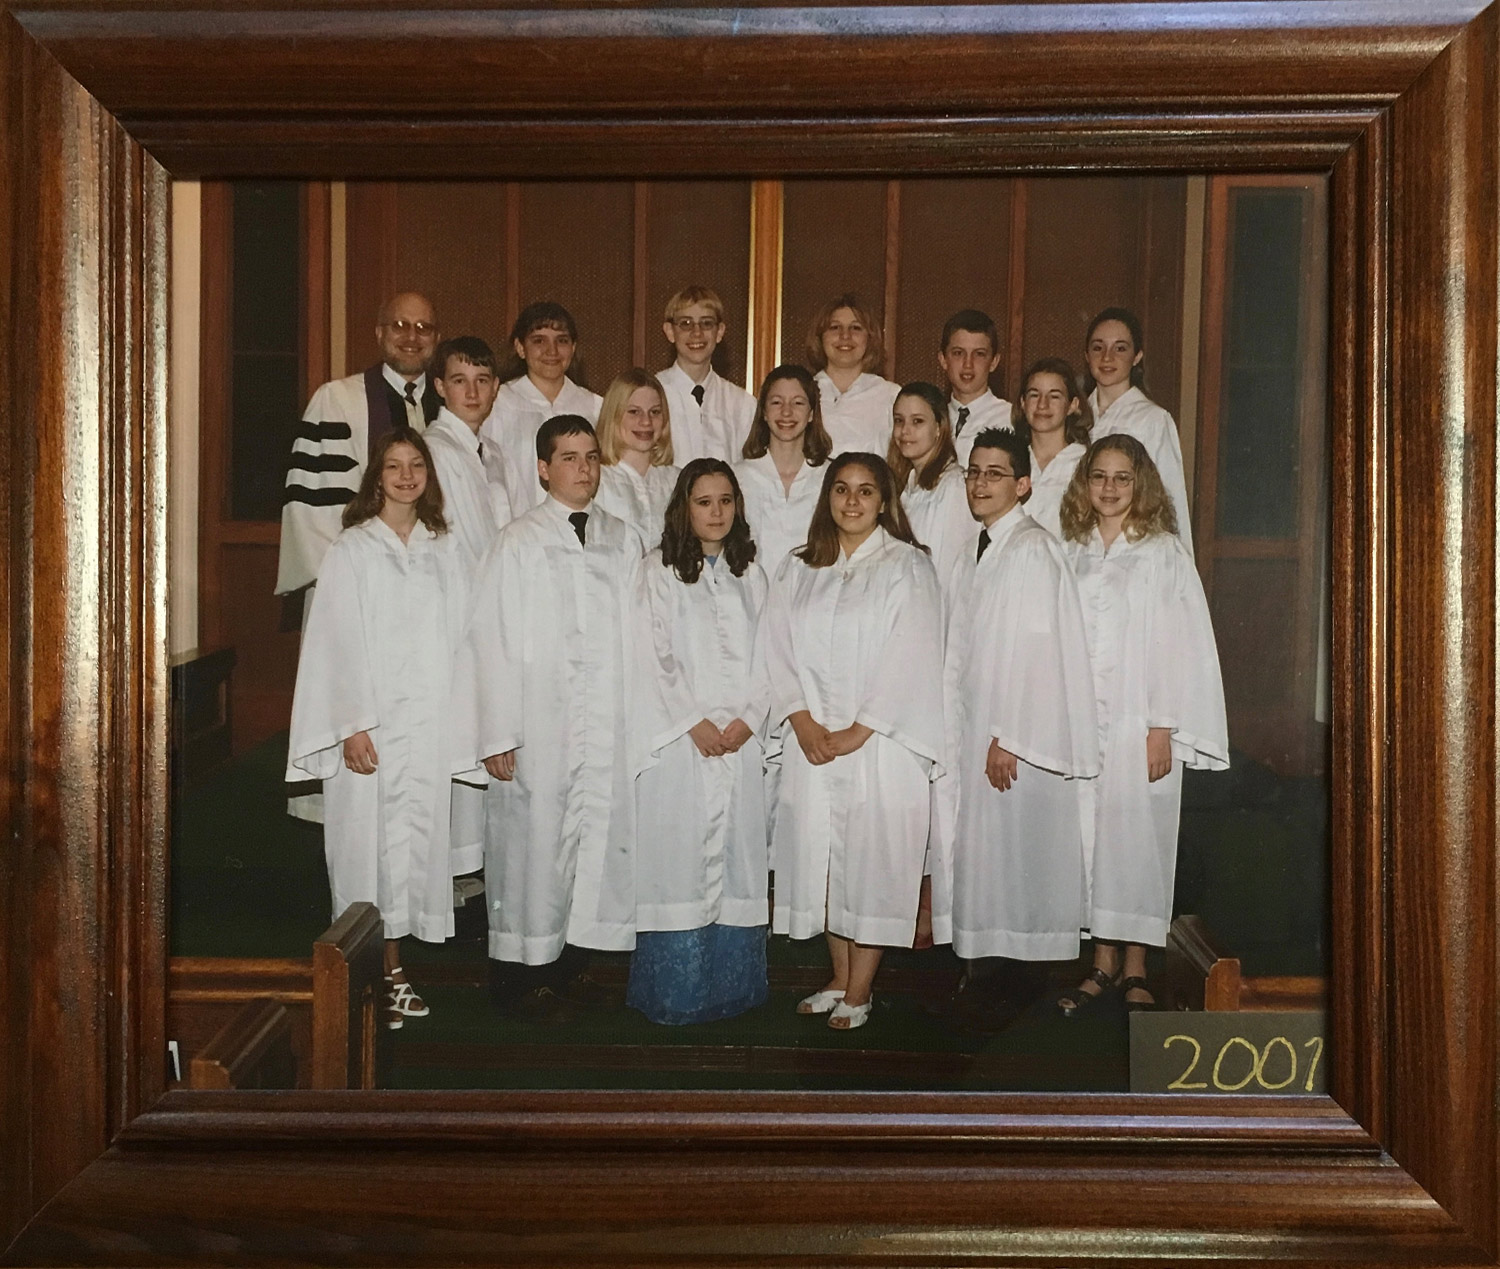 2001 Confirmation Class at St John UCC New Athens